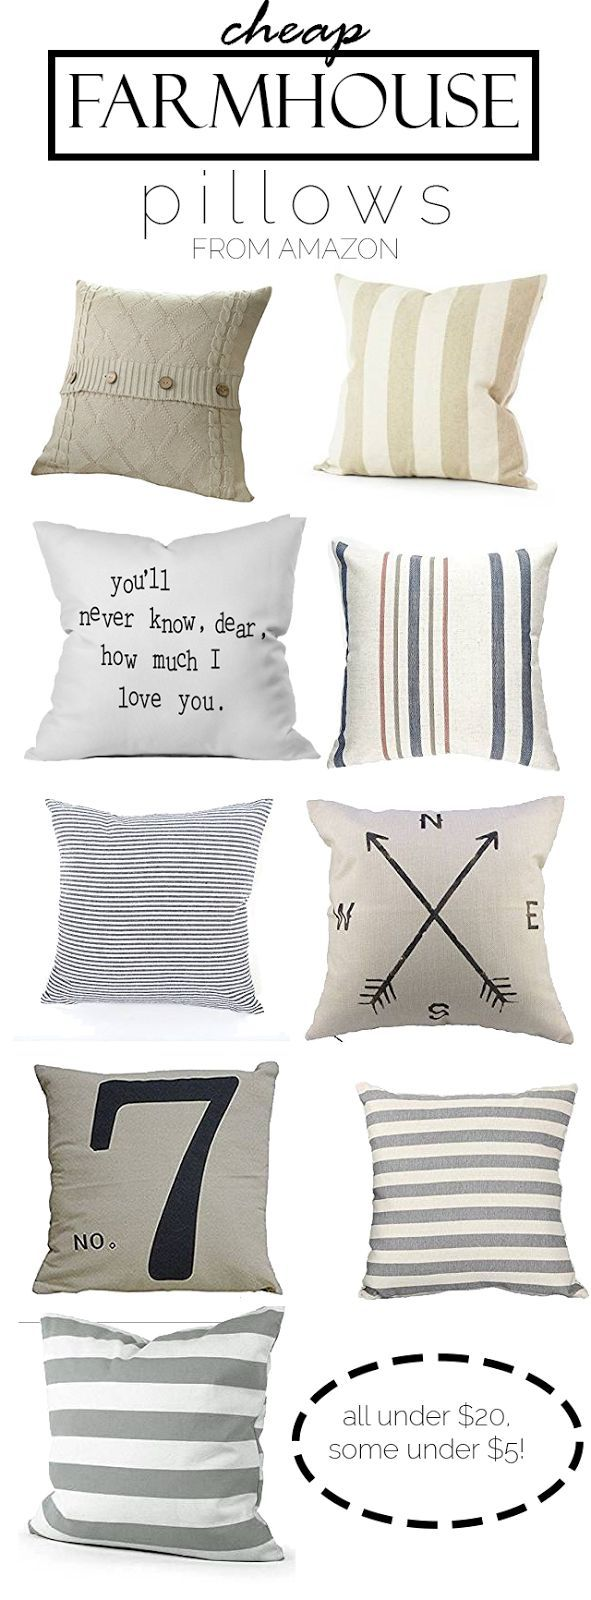 Cheap Decorative Pillows Under $10 Interesting 174 Best Coussins Images On Pinterest  Home Ideas Pillows And Blinds Design Ideas